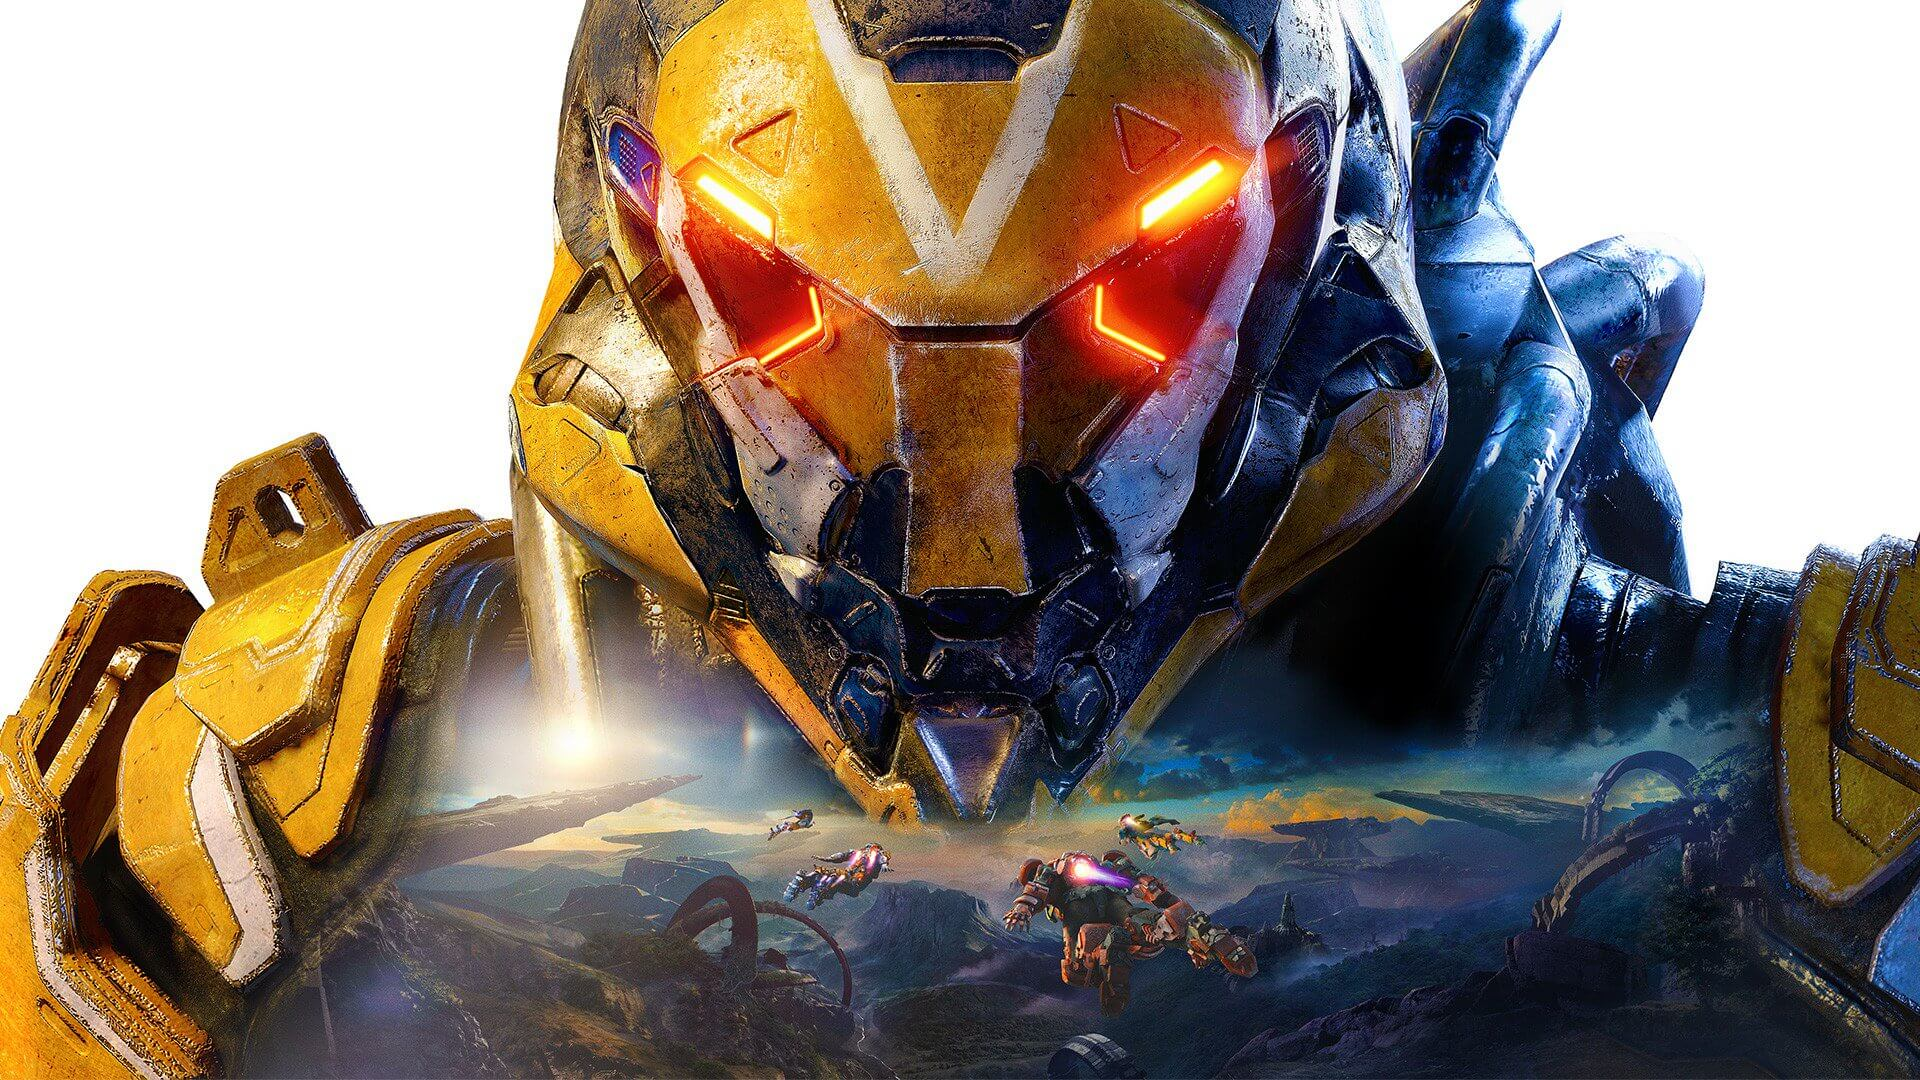 """Bioware announces """"Anthem 2.0"""", will be redesigned with the aim to reinvent the core gameplay"""